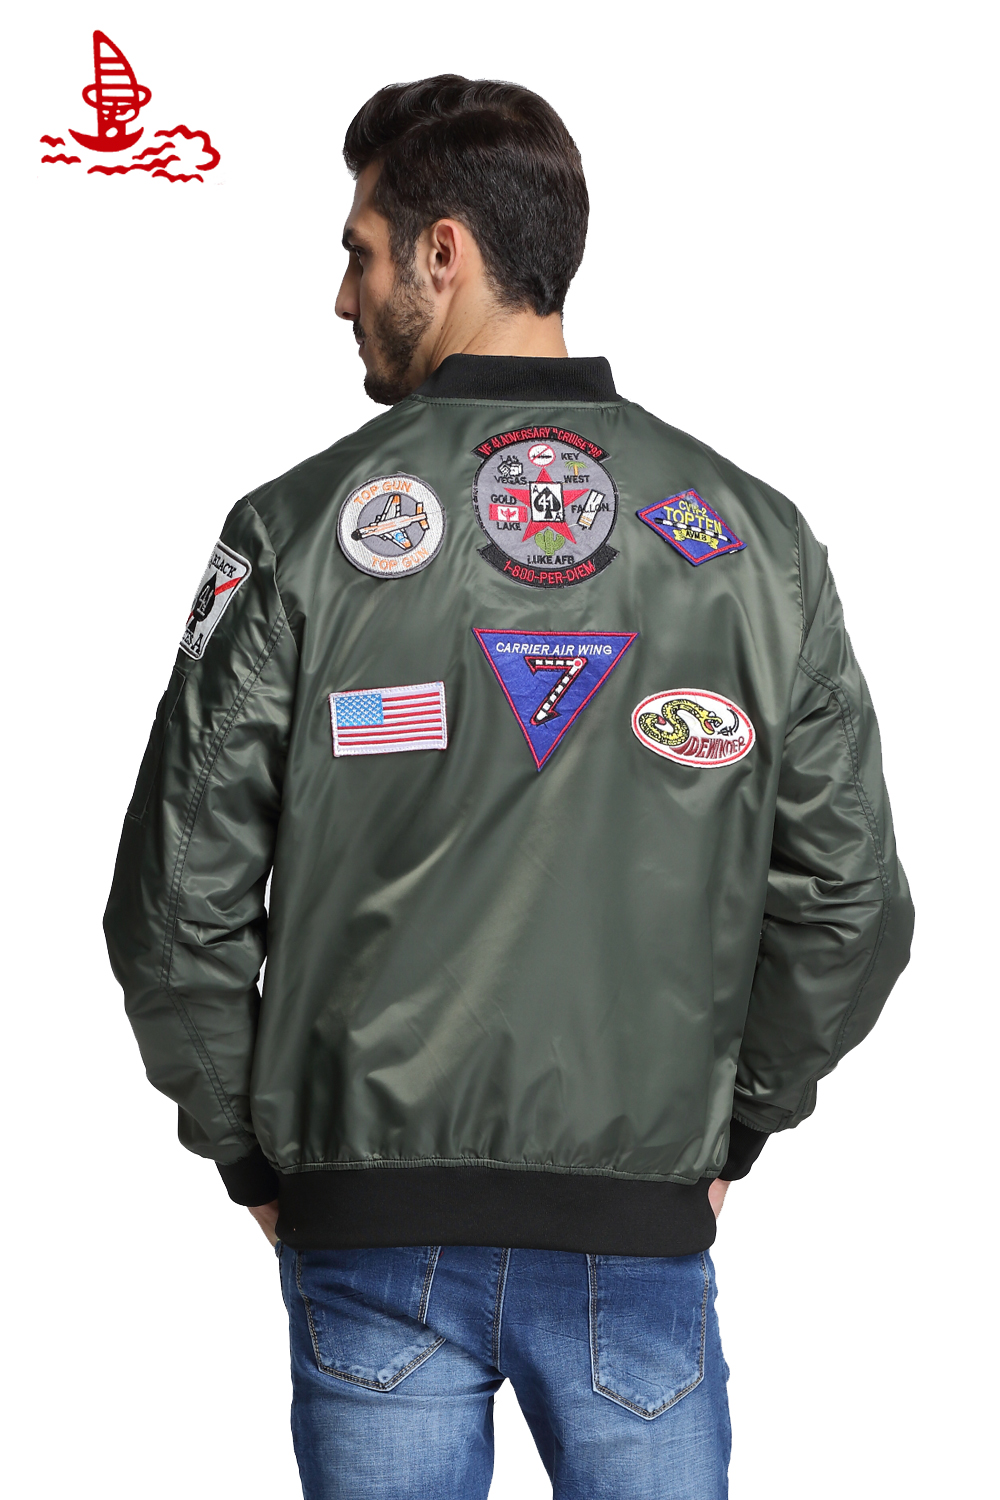 Leather jacket patches - Aliexpress Com Buy 11 Patches Ma1 Top Gun Navy Flying Jacket Military Army Green Hip Hop Streetwear Letterman Varsity Bomber Flight Jacket For Men From